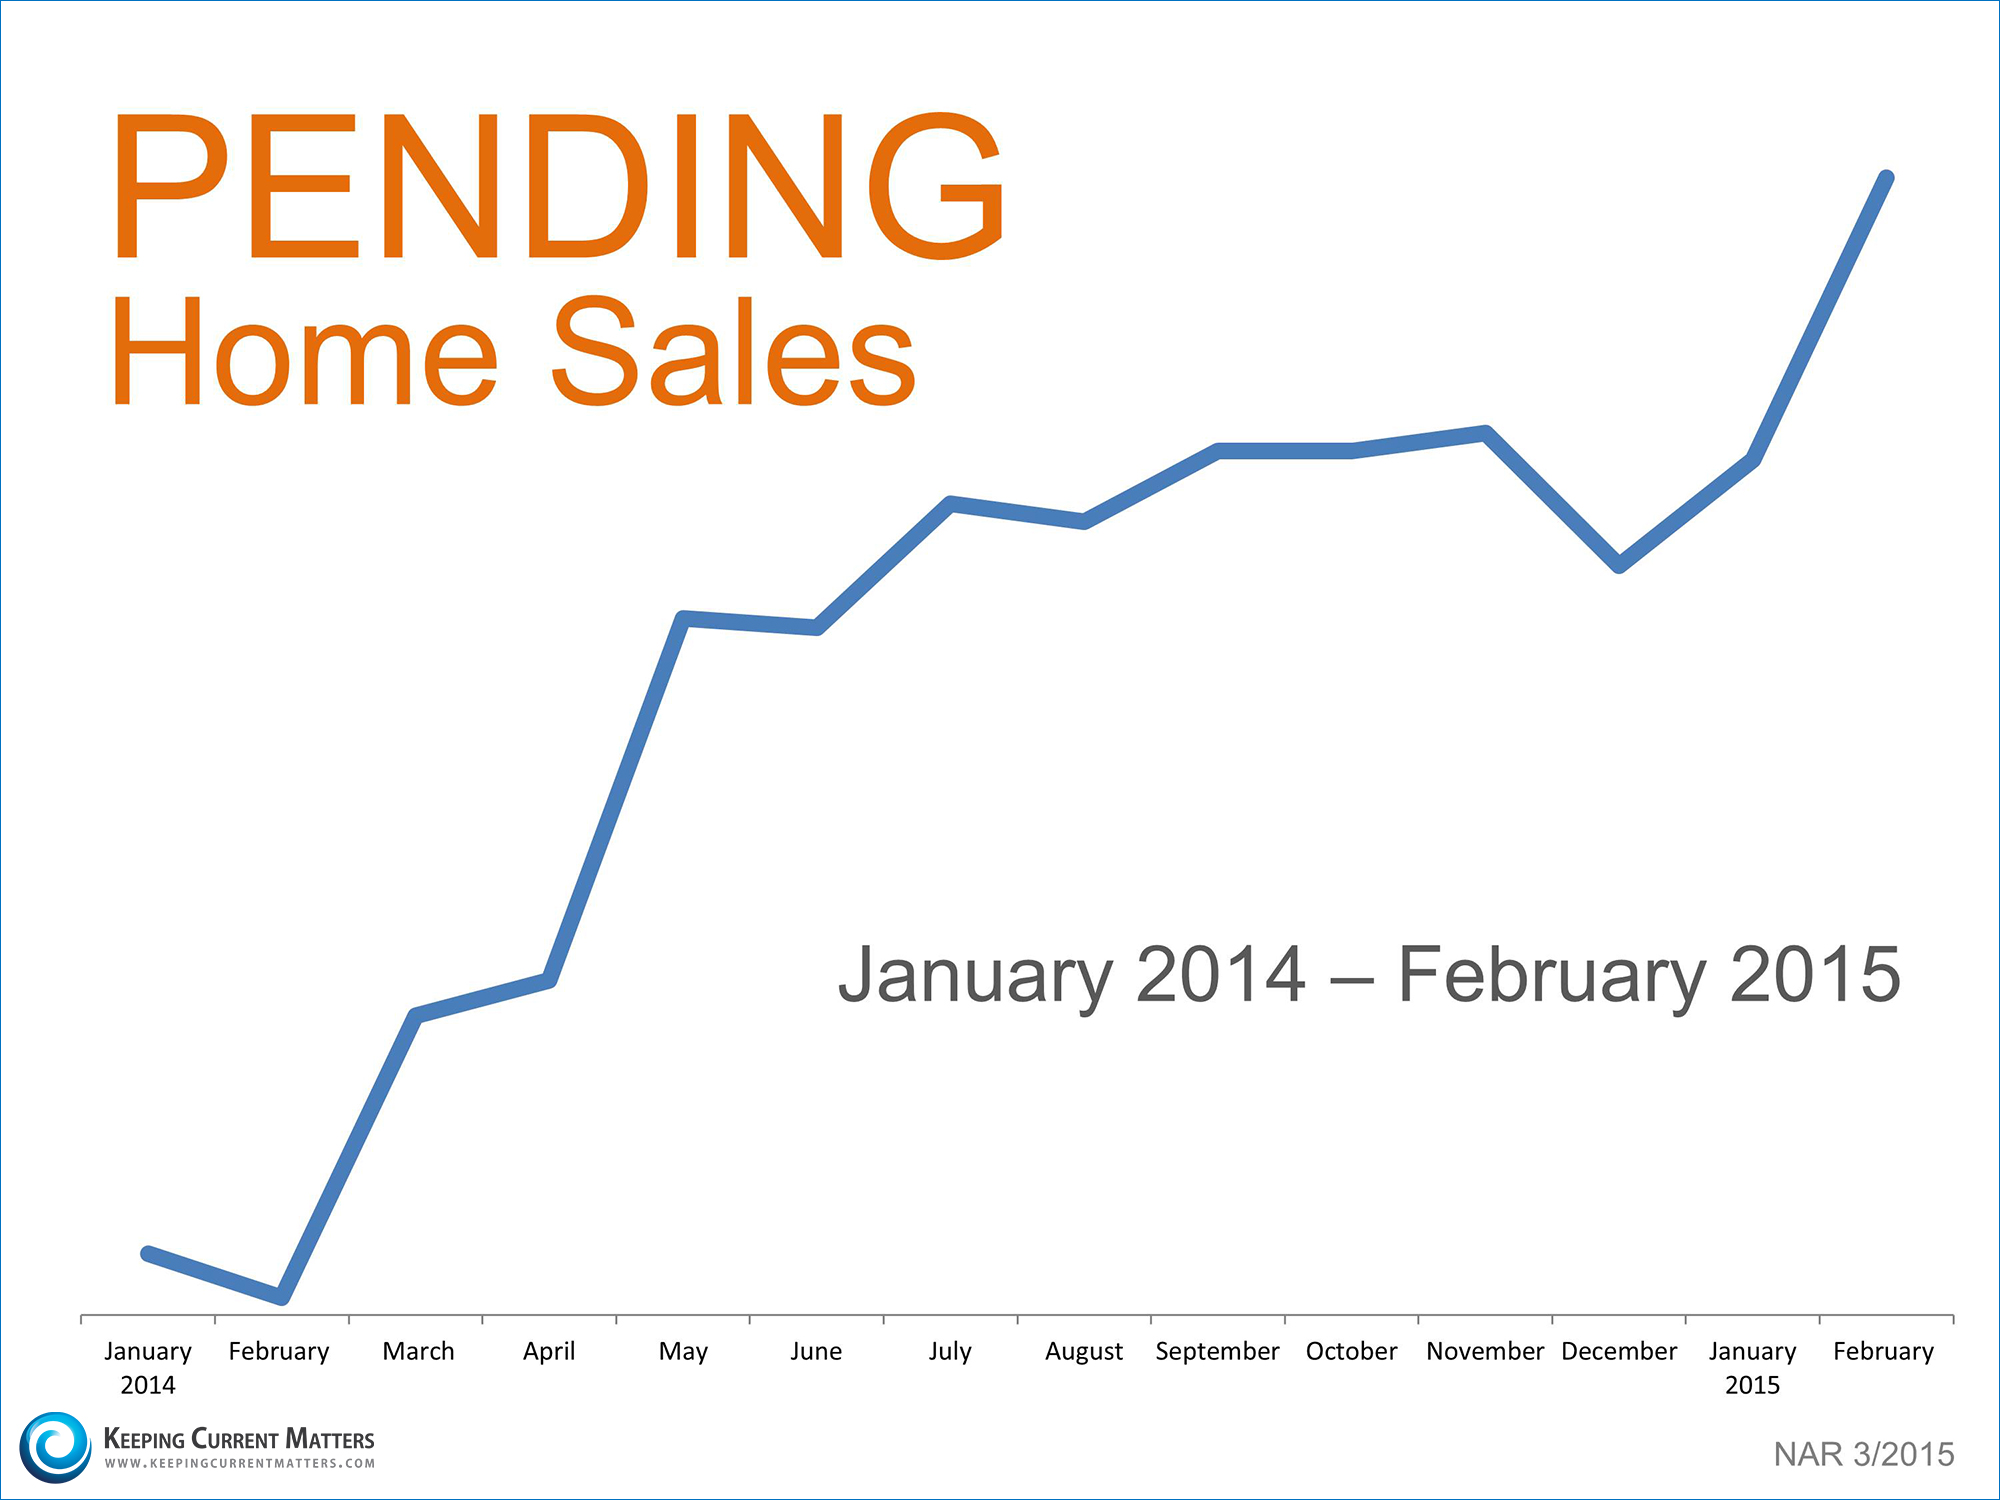 Pending Home Sales | Keeping Current Matters